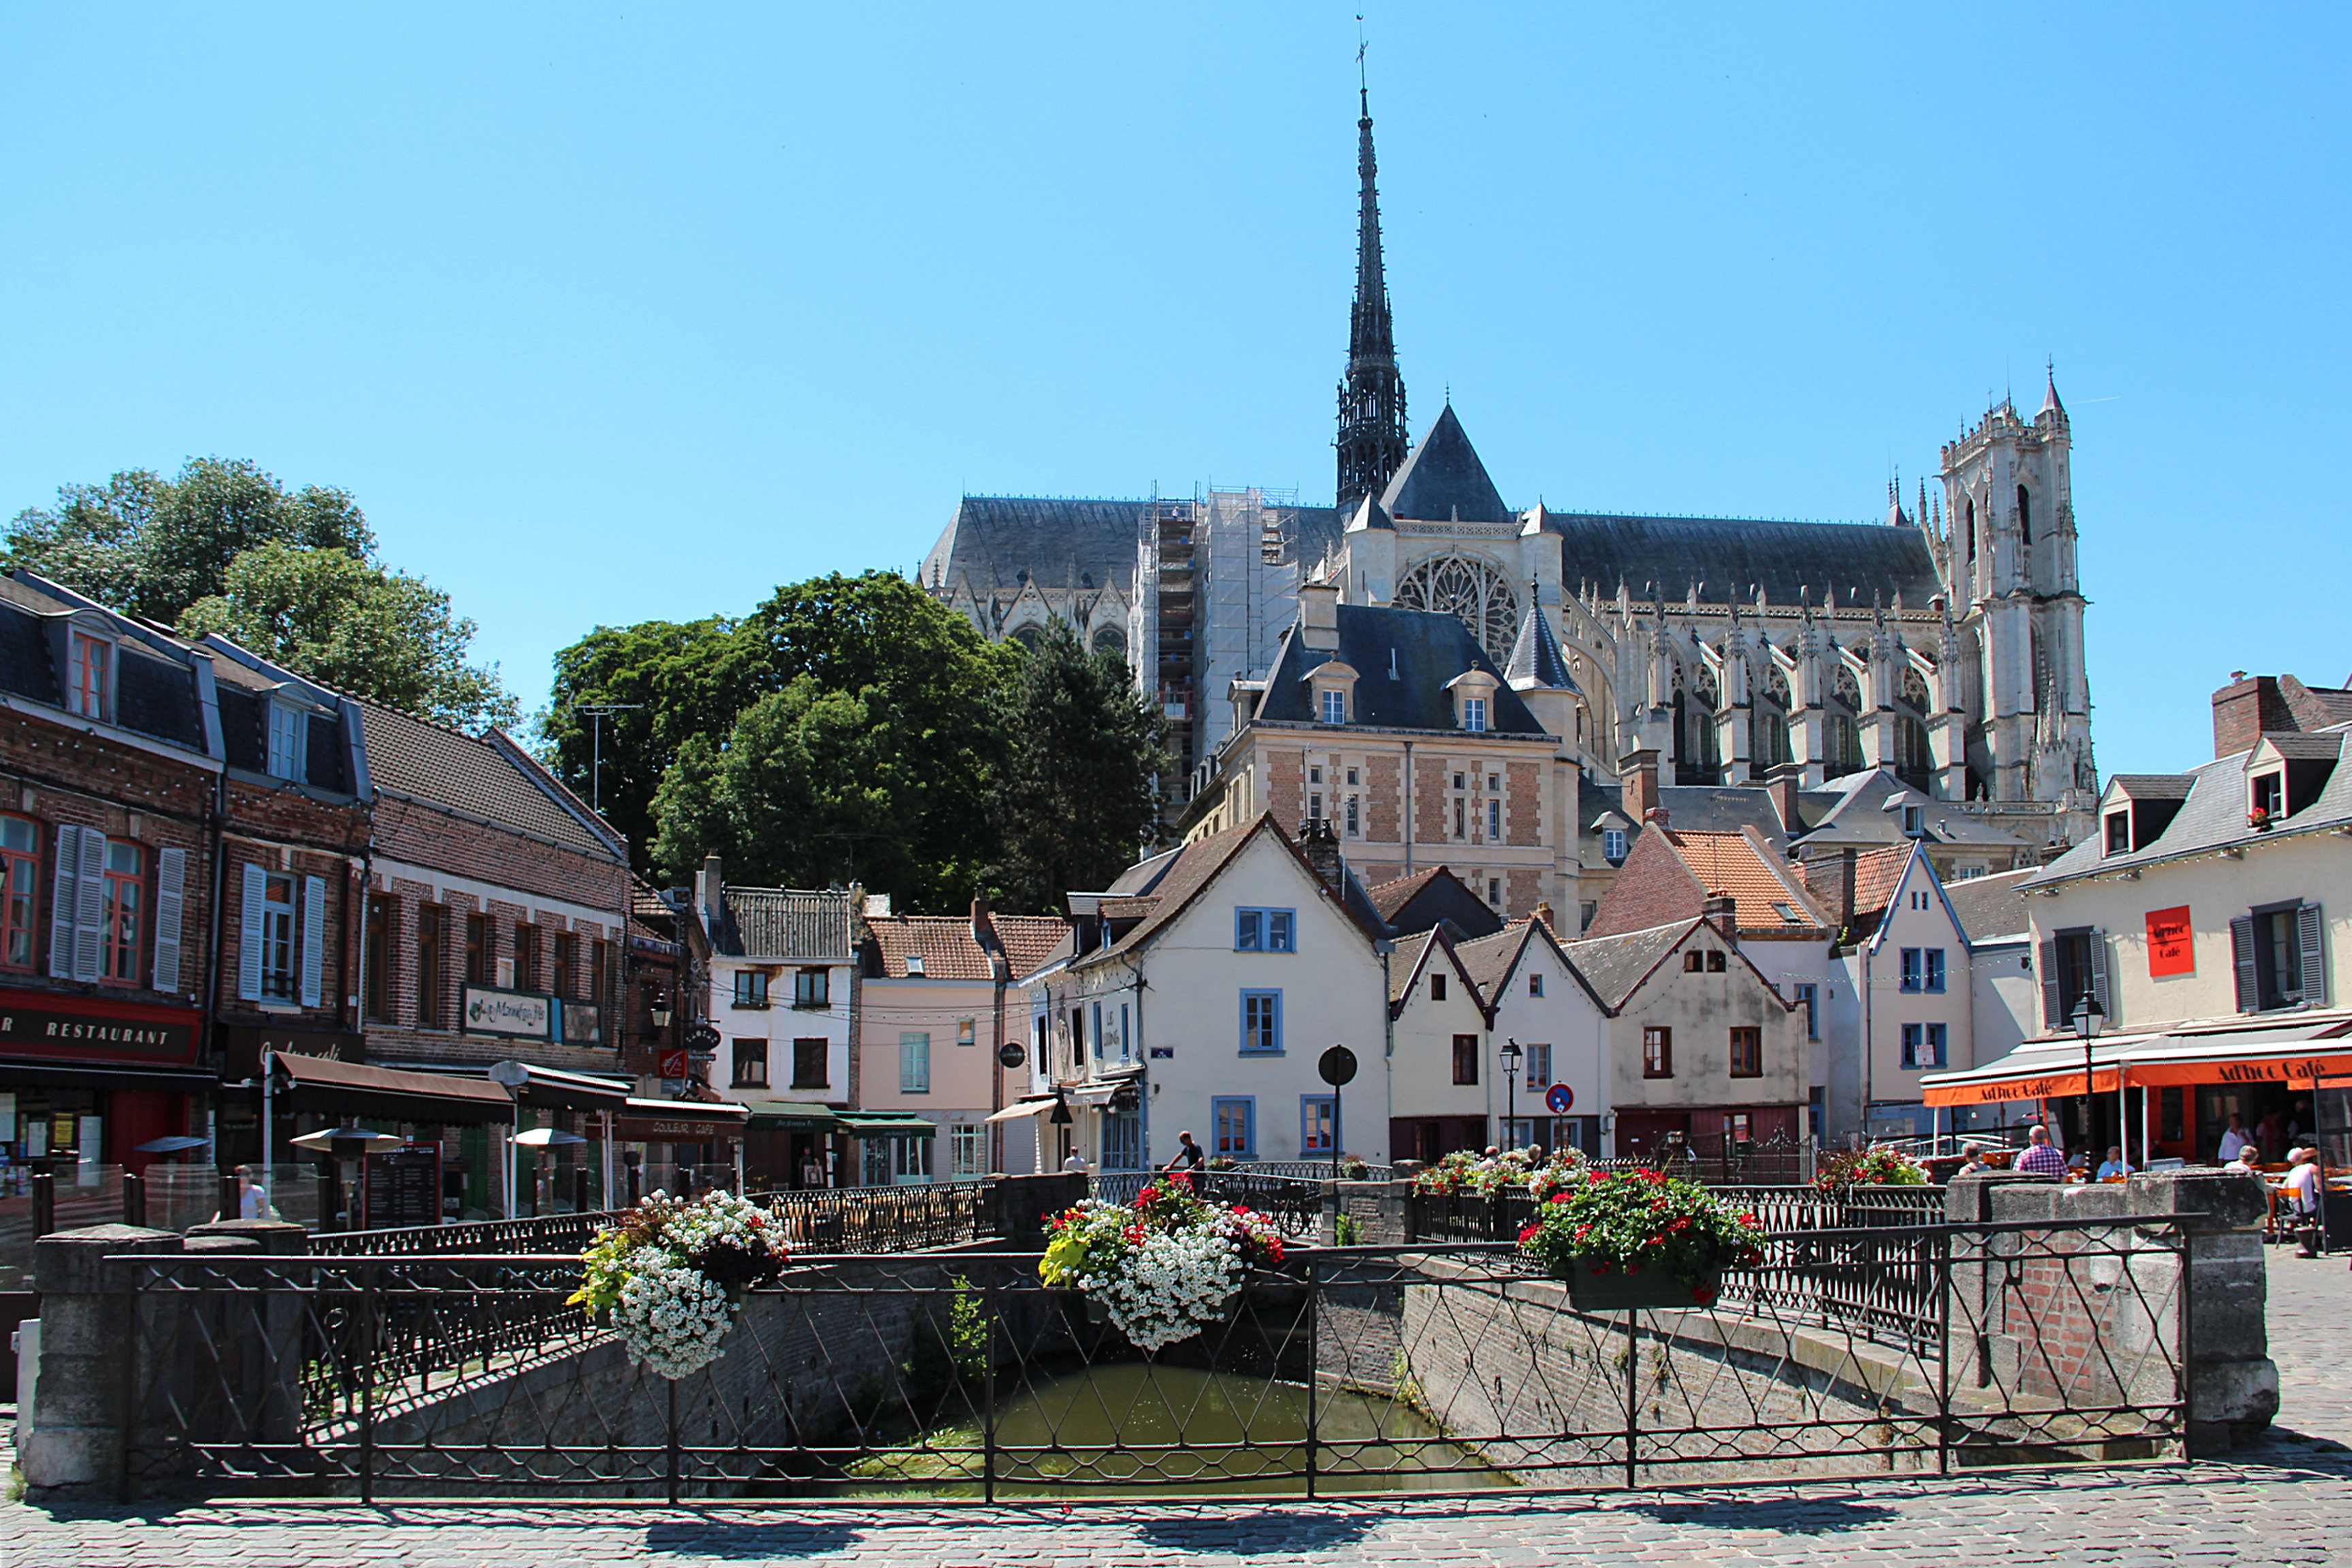 http://upload.wikimedia.org/wikipedia/commons/c/c3/0_Amiens_-_Place_du_Don_-_Cath%C3%A9drale_(1).JPG